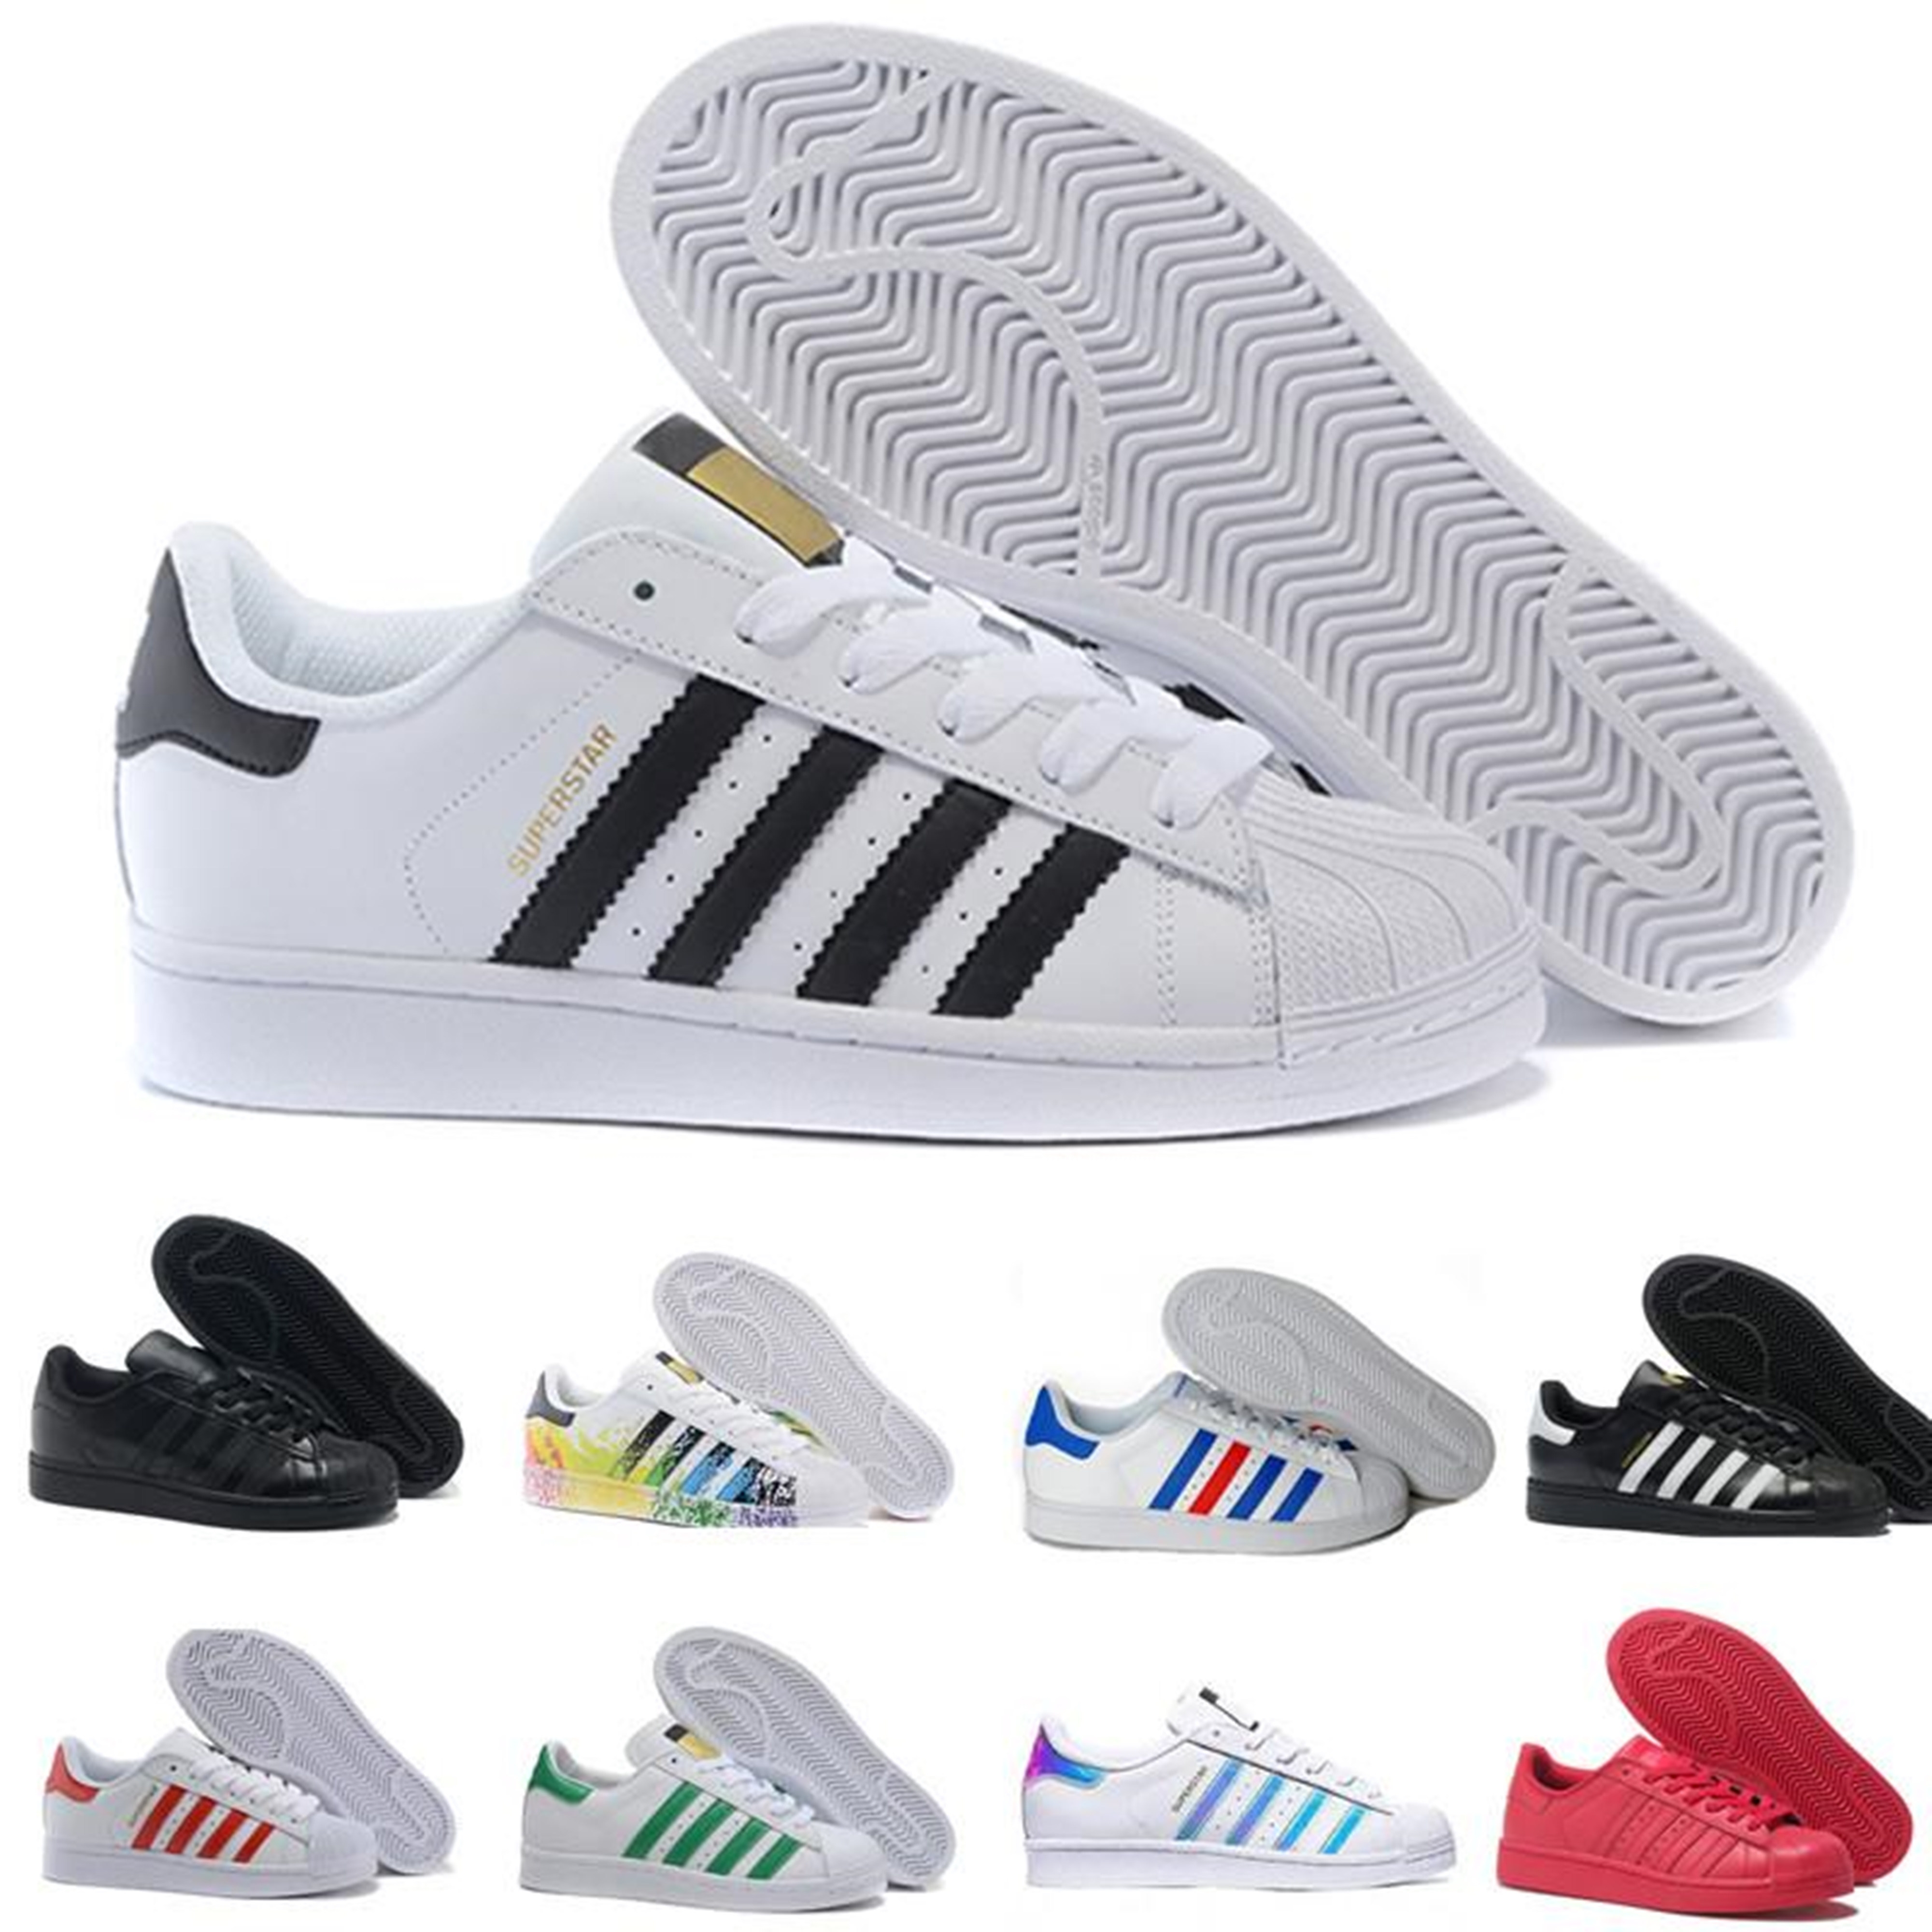 Casual Originals Superstar White Hologram Iridescent Junior Superstars 80s Pride Sneakers Super Star Women Men Sport Casual Shoes Size 36 45